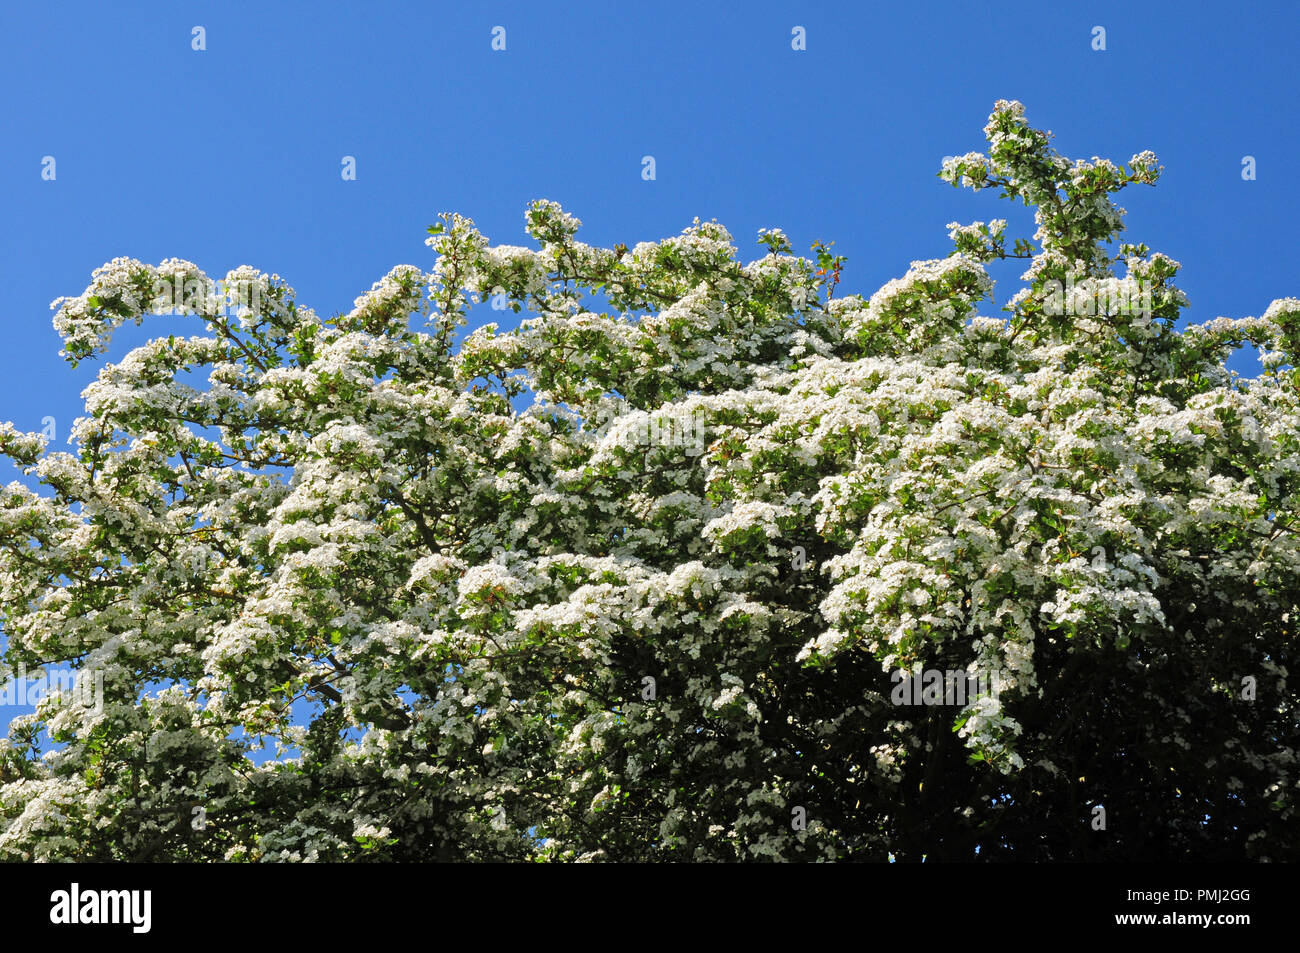 Hawthorn tree, Crataegus monogyna in bloom. - Stock Image